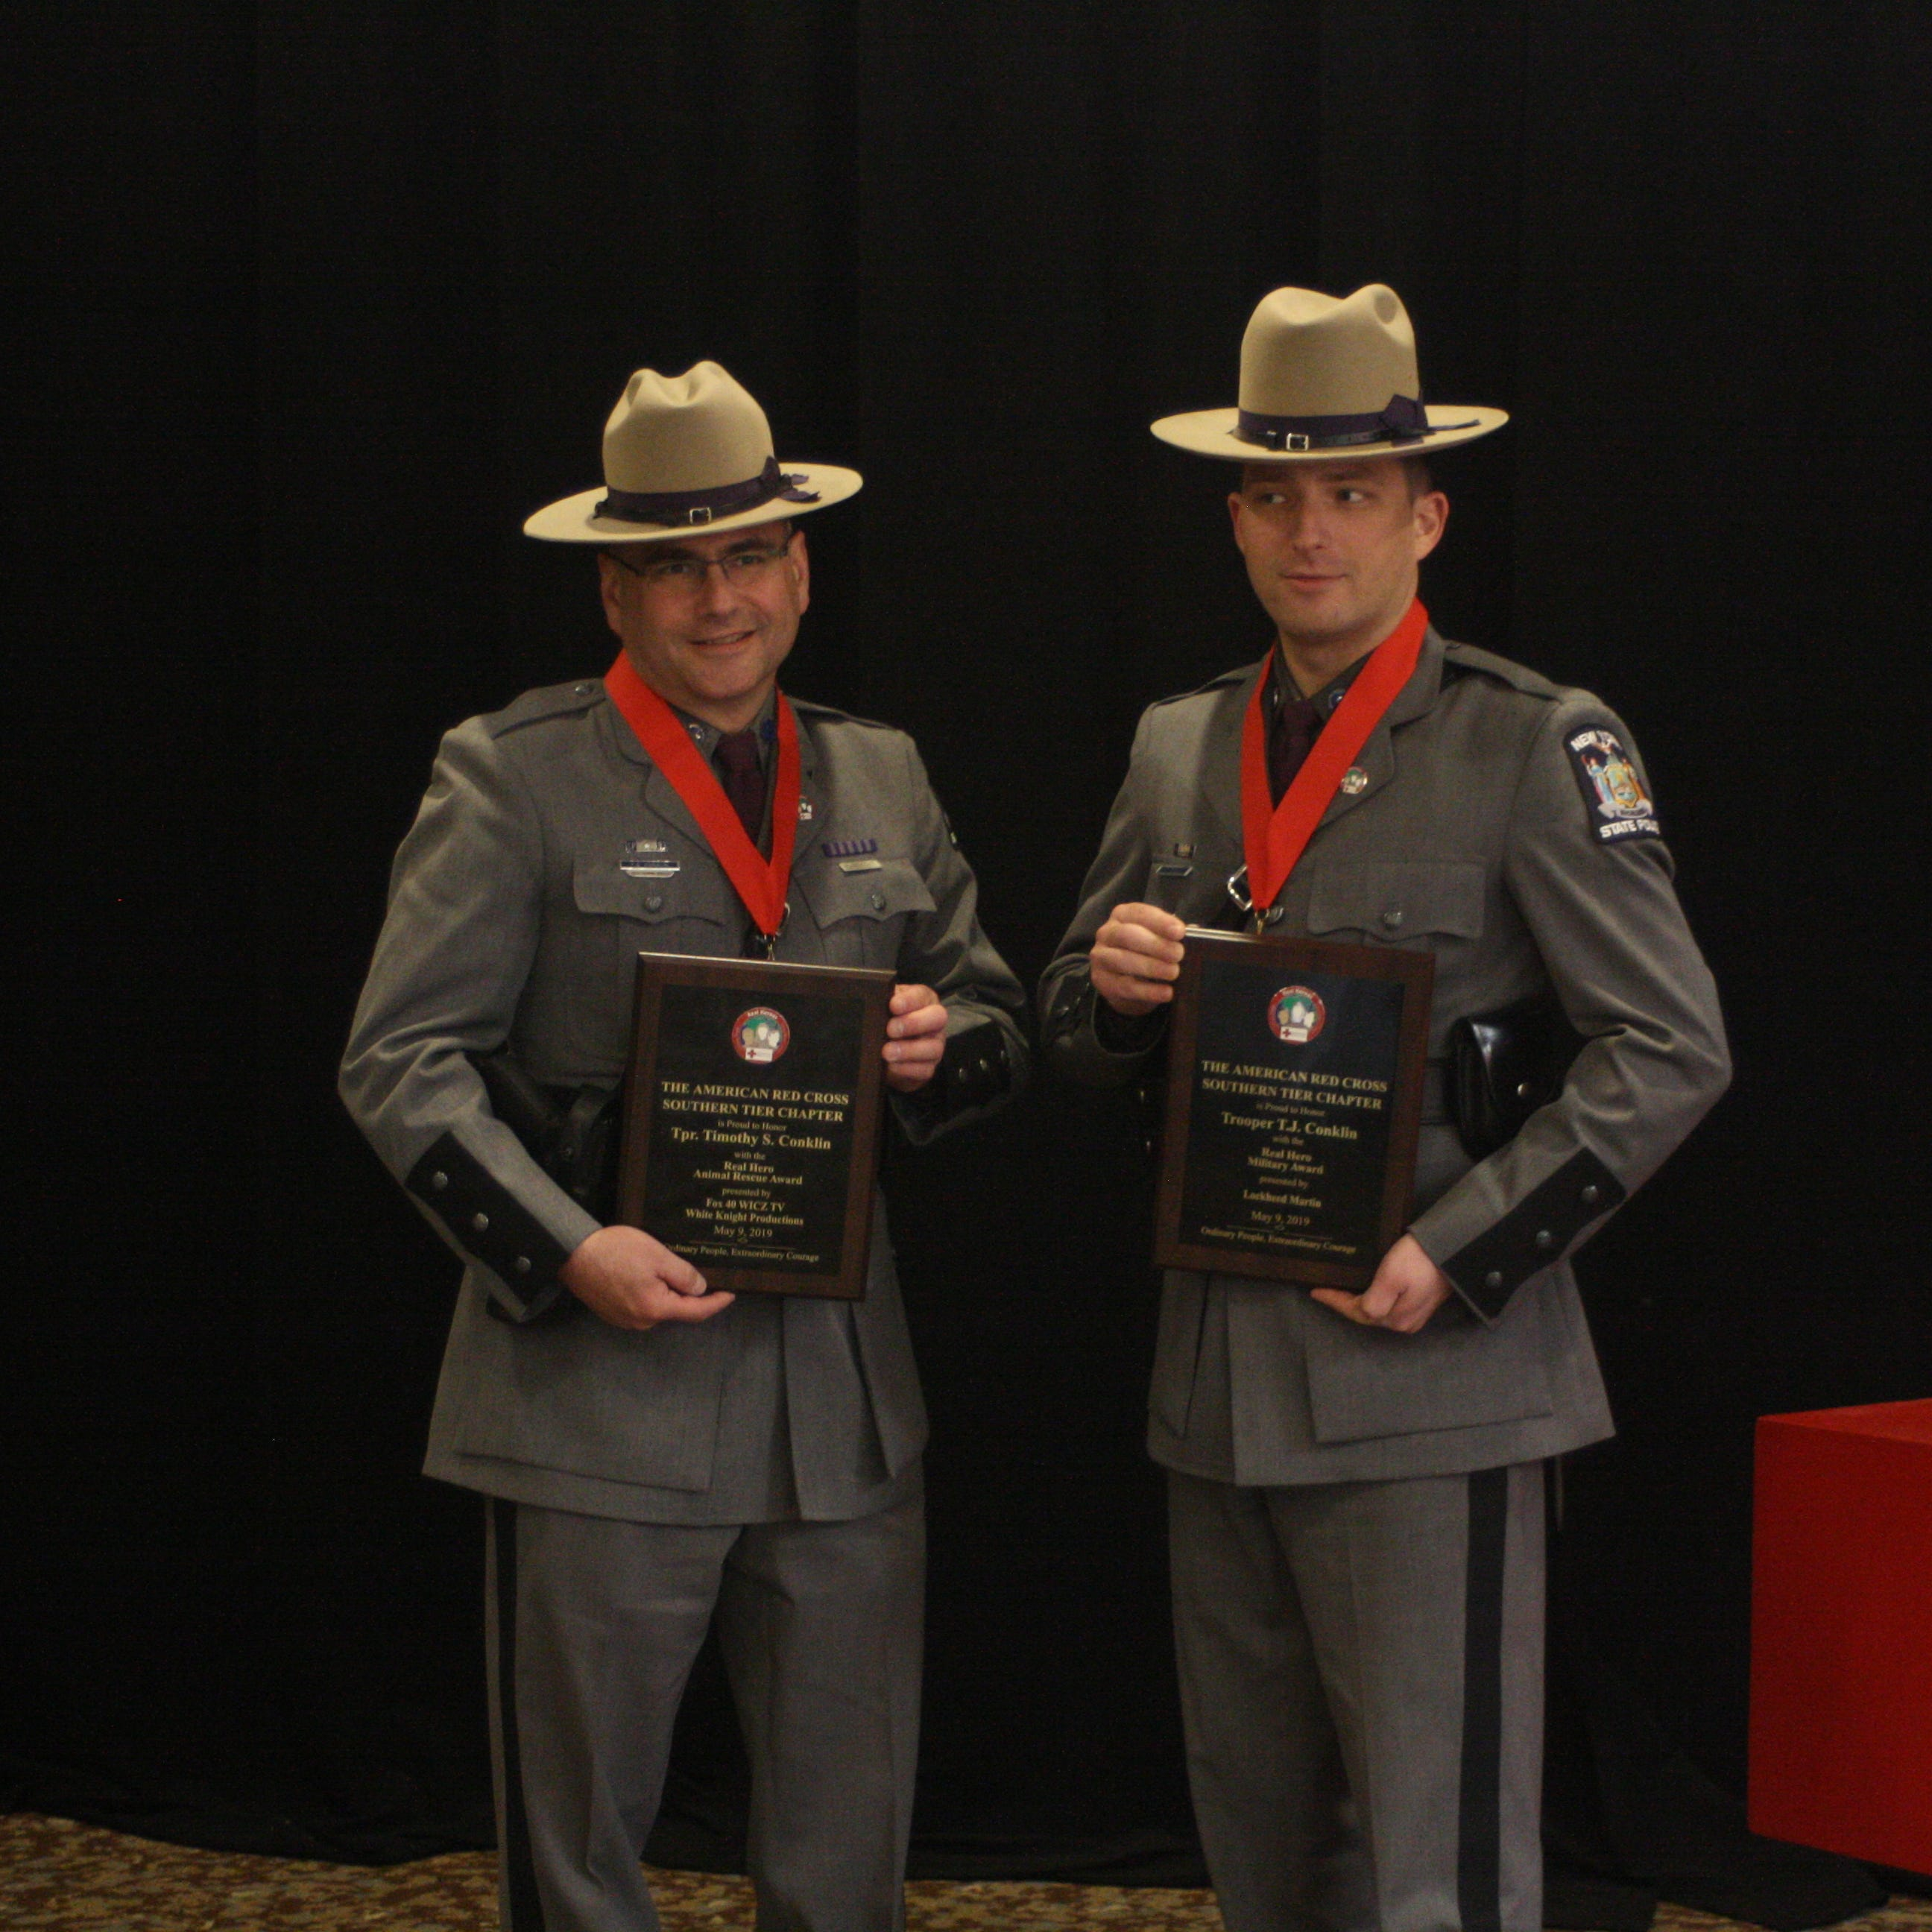 A father and his son, both New York state troopers, among the Red Cross 'Real Heroes'